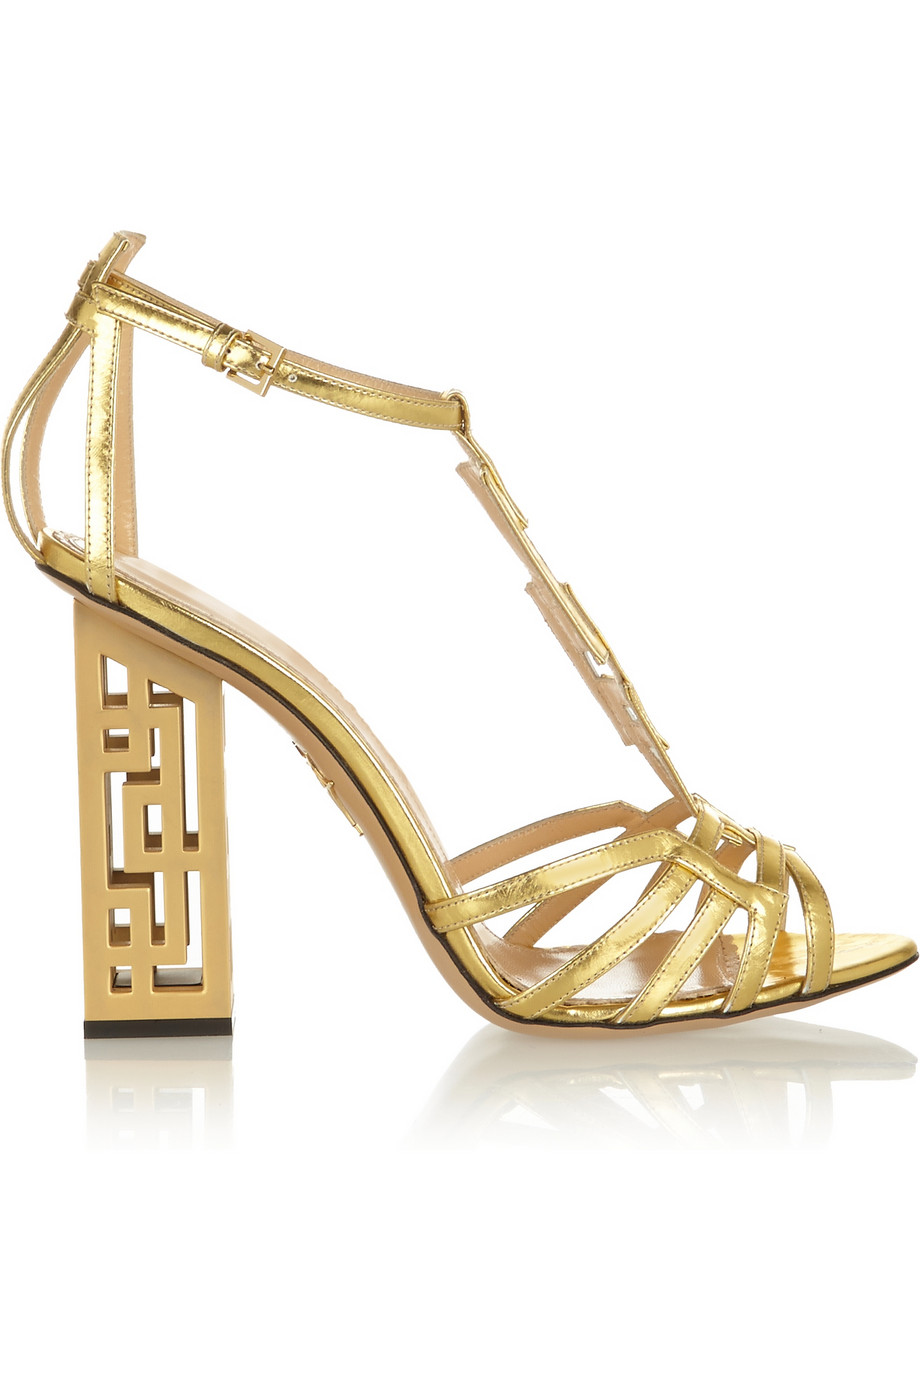 Charlotte Olympia  - was $1,295, now $648